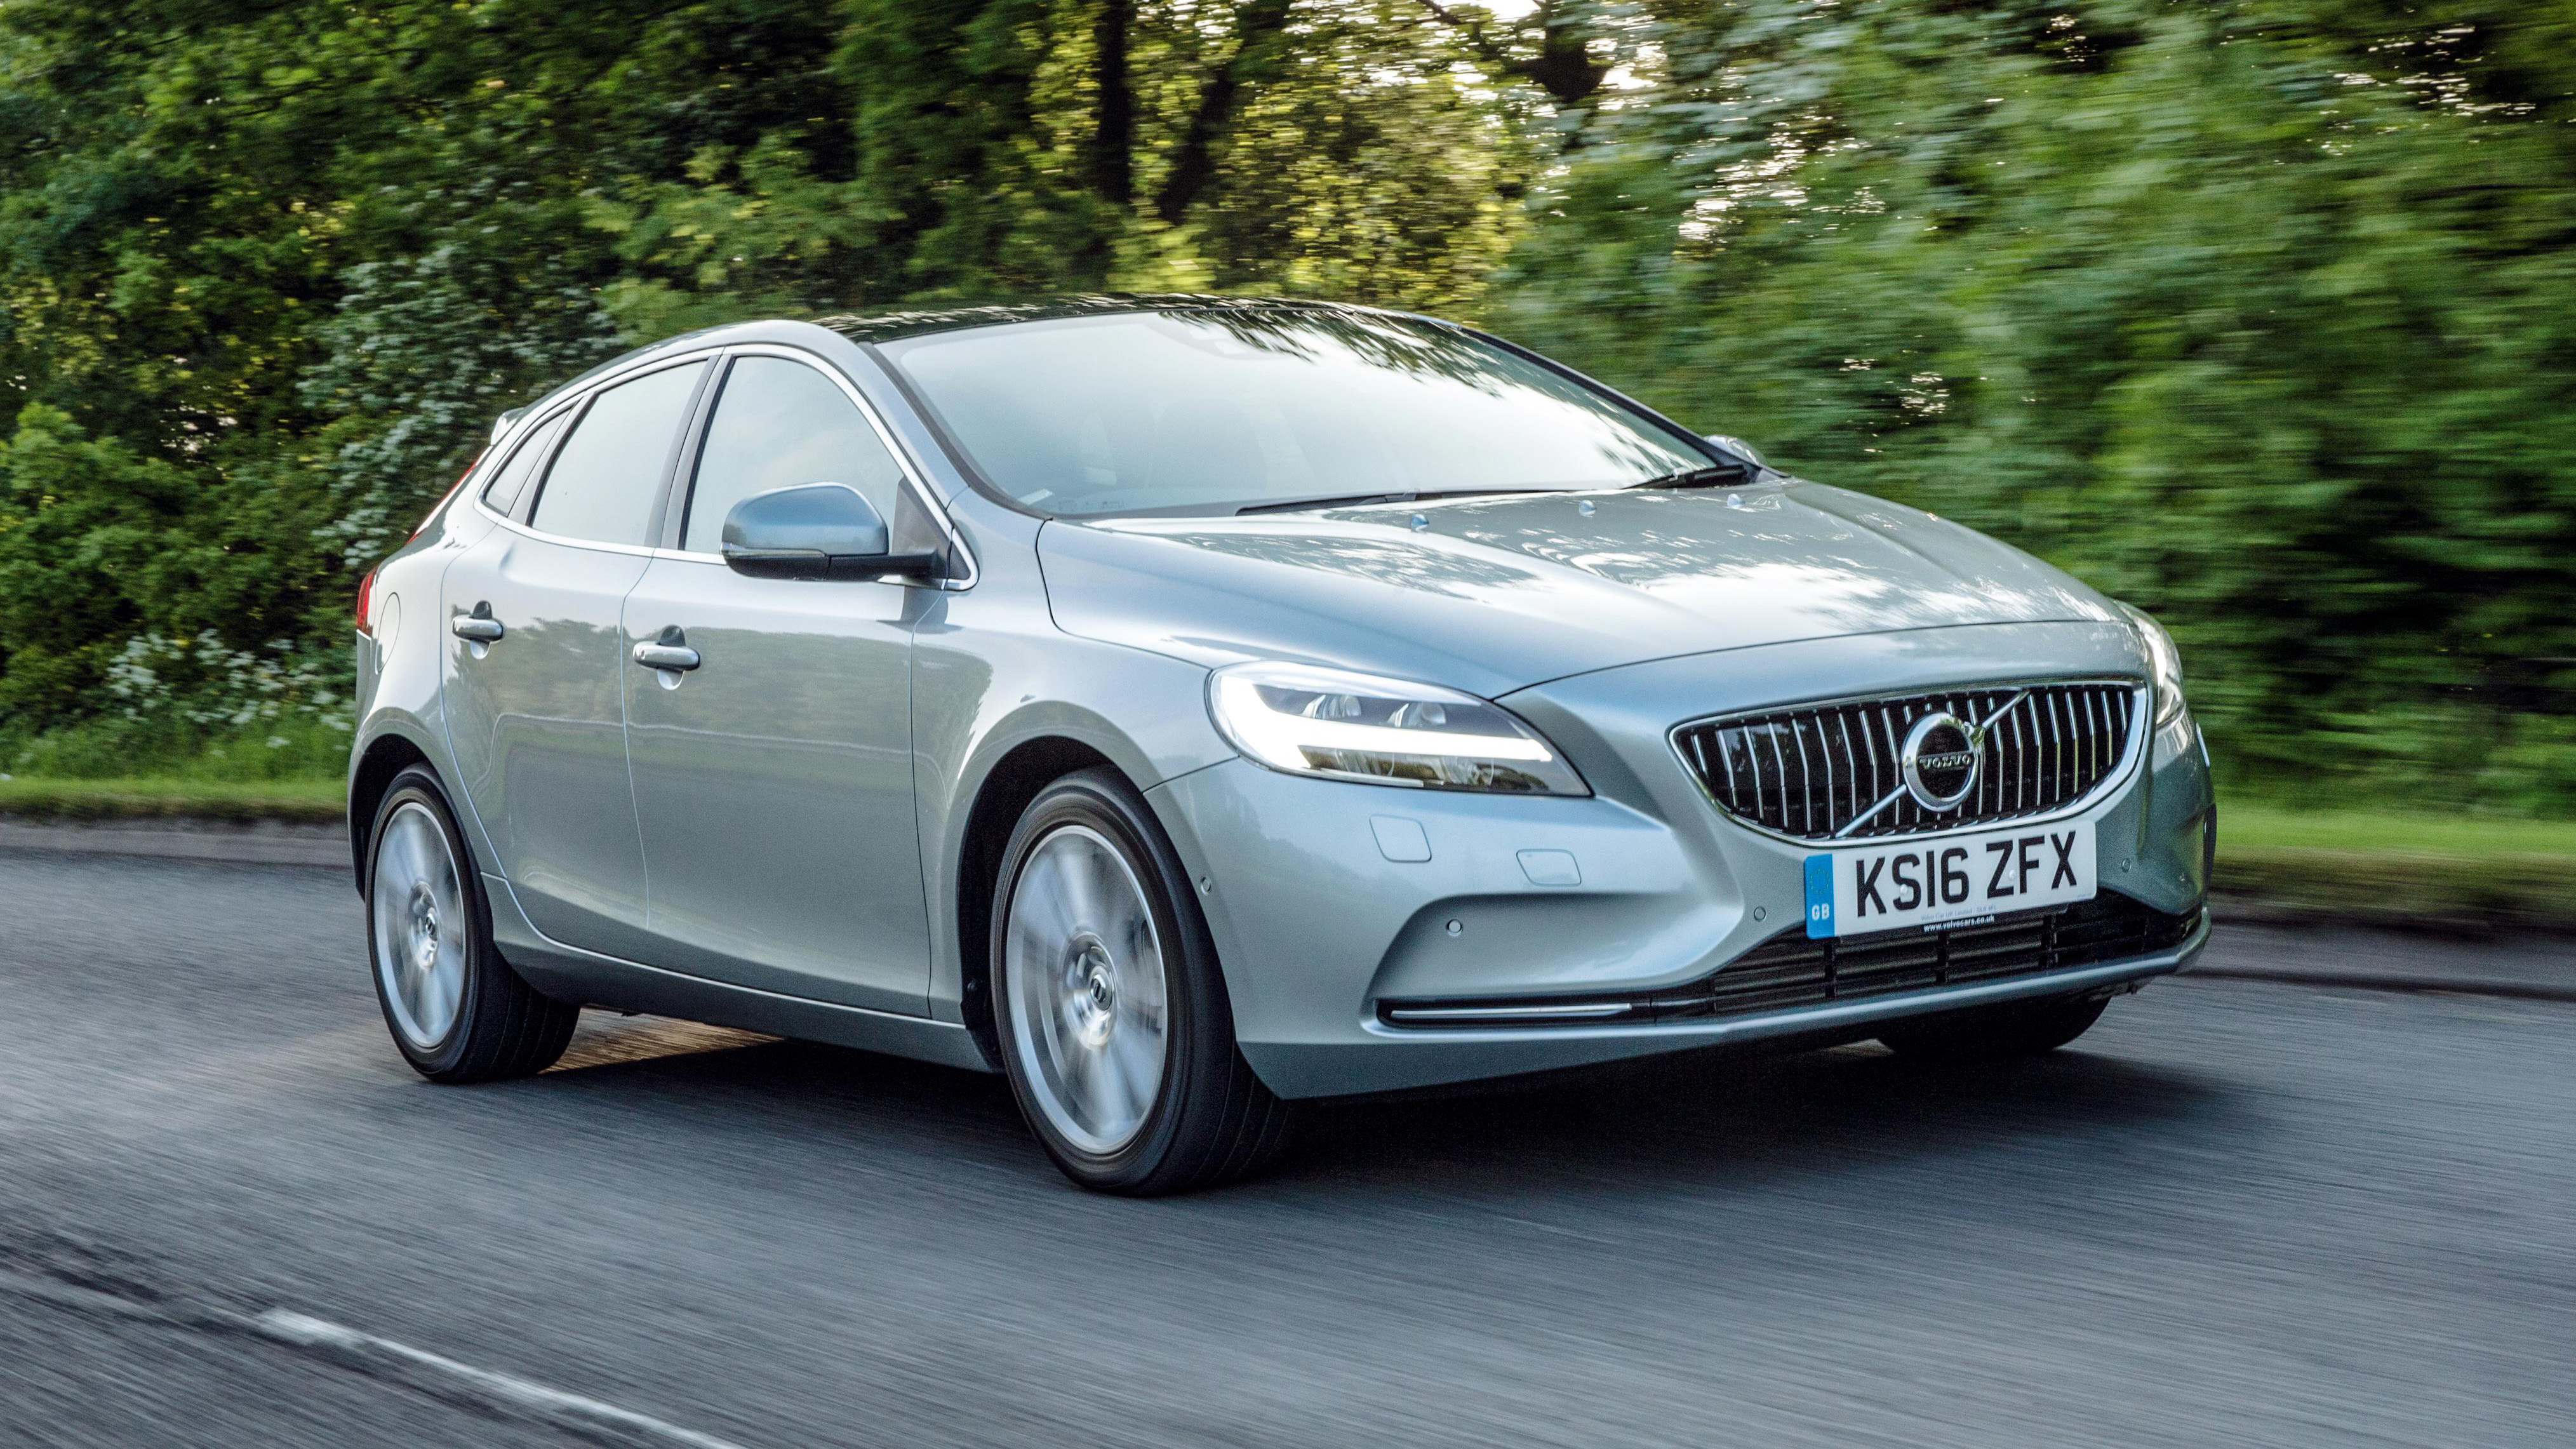 volvo v40 review and buying guide best deals and prices. Black Bedroom Furniture Sets. Home Design Ideas